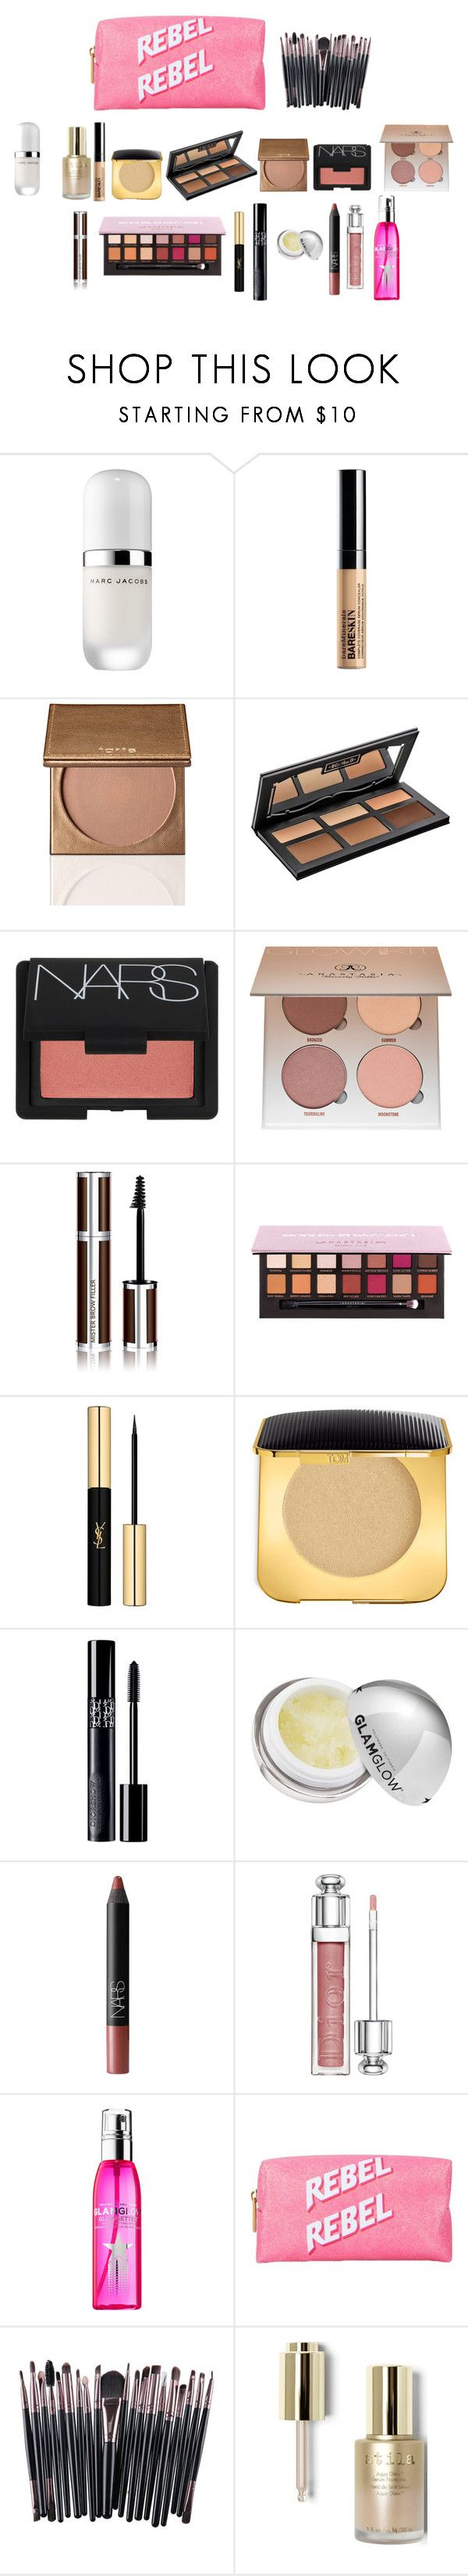 """""""wishlist"""" by thedoyenne ❤ liked on Polyvore featuring beauty, Marc Jacobs, Bare Escentuals, Kat Von D, NARS Cosmetics, Anastasia Beverly Hills, Givenchy, Yves Saint Laurent, Tom Ford and Christian Dior"""